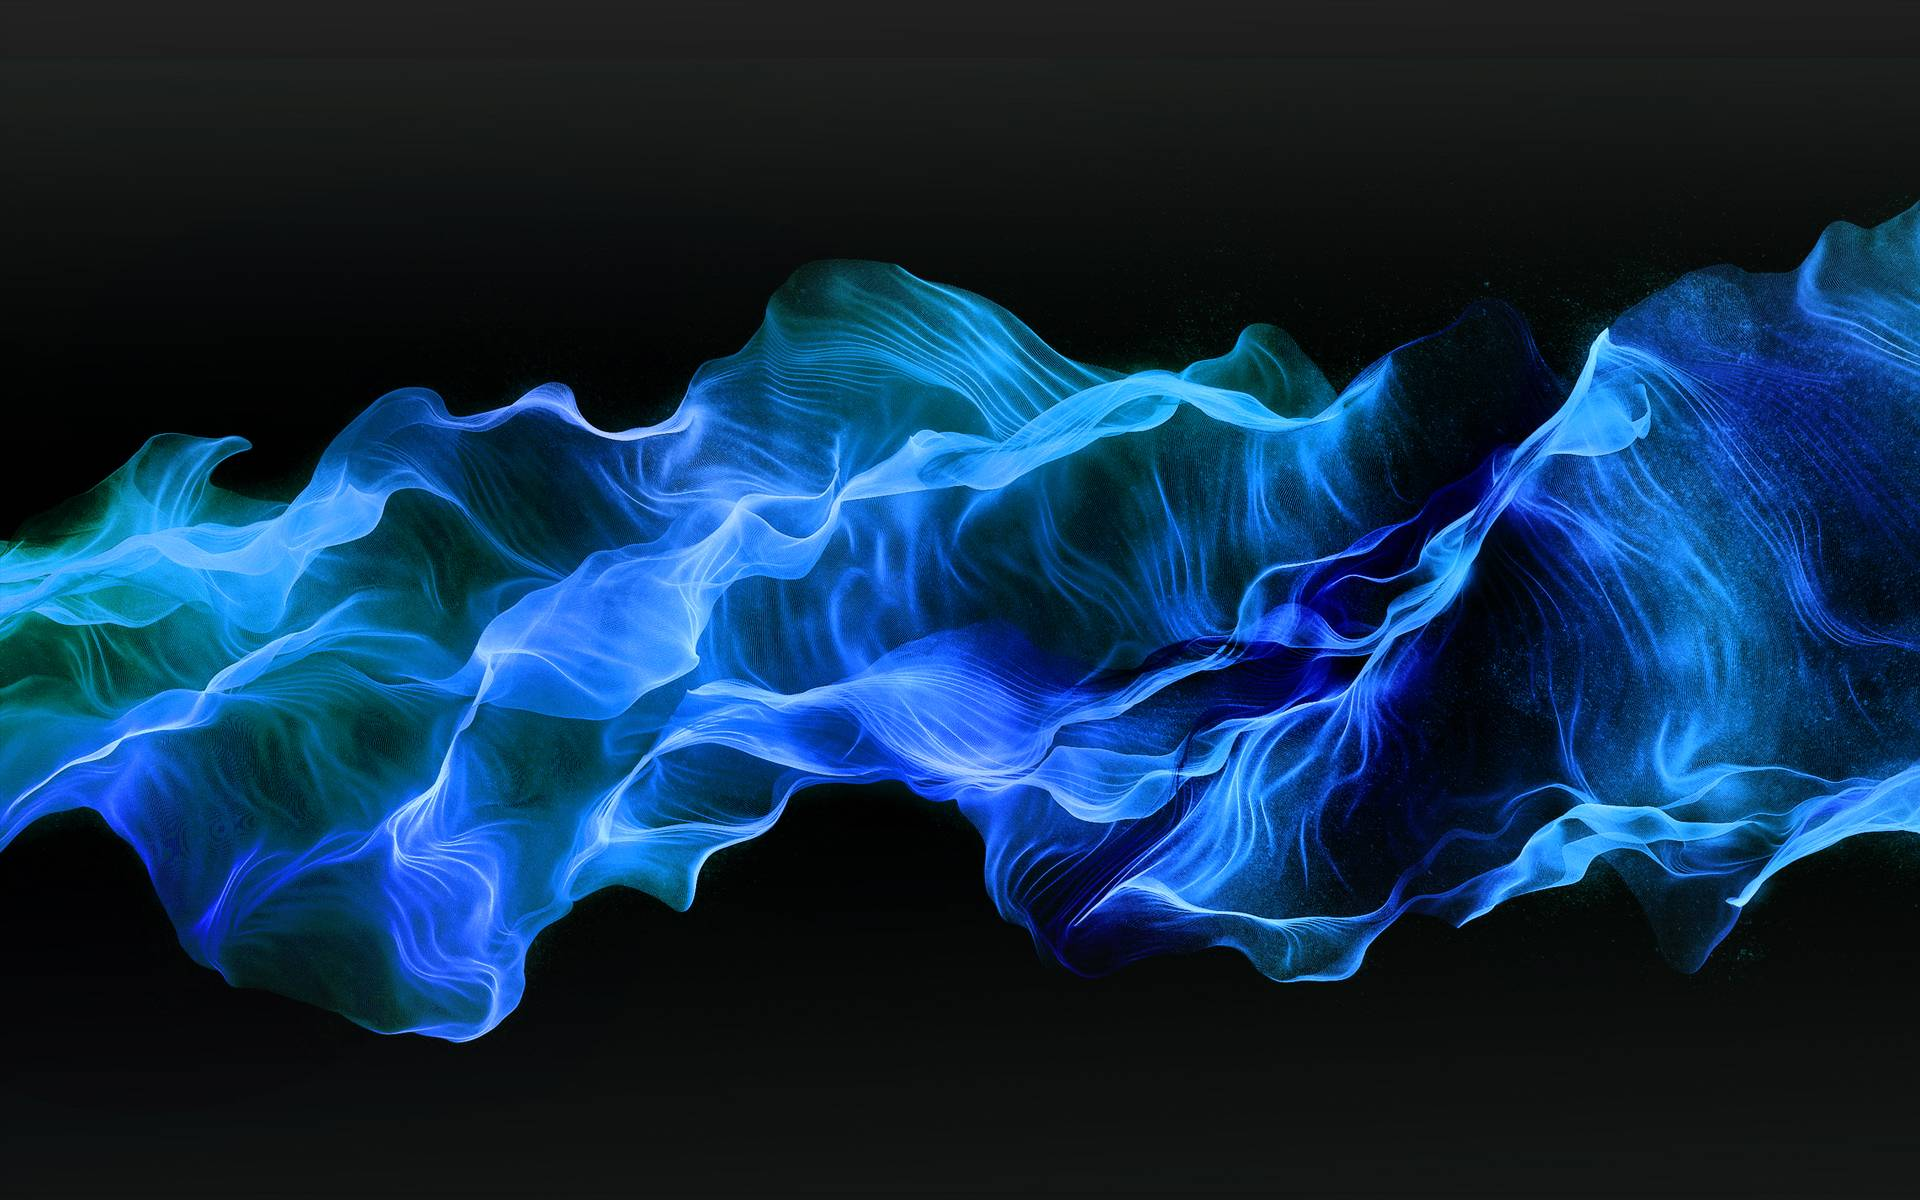 Blue Fire Wallpapers 1920x1200